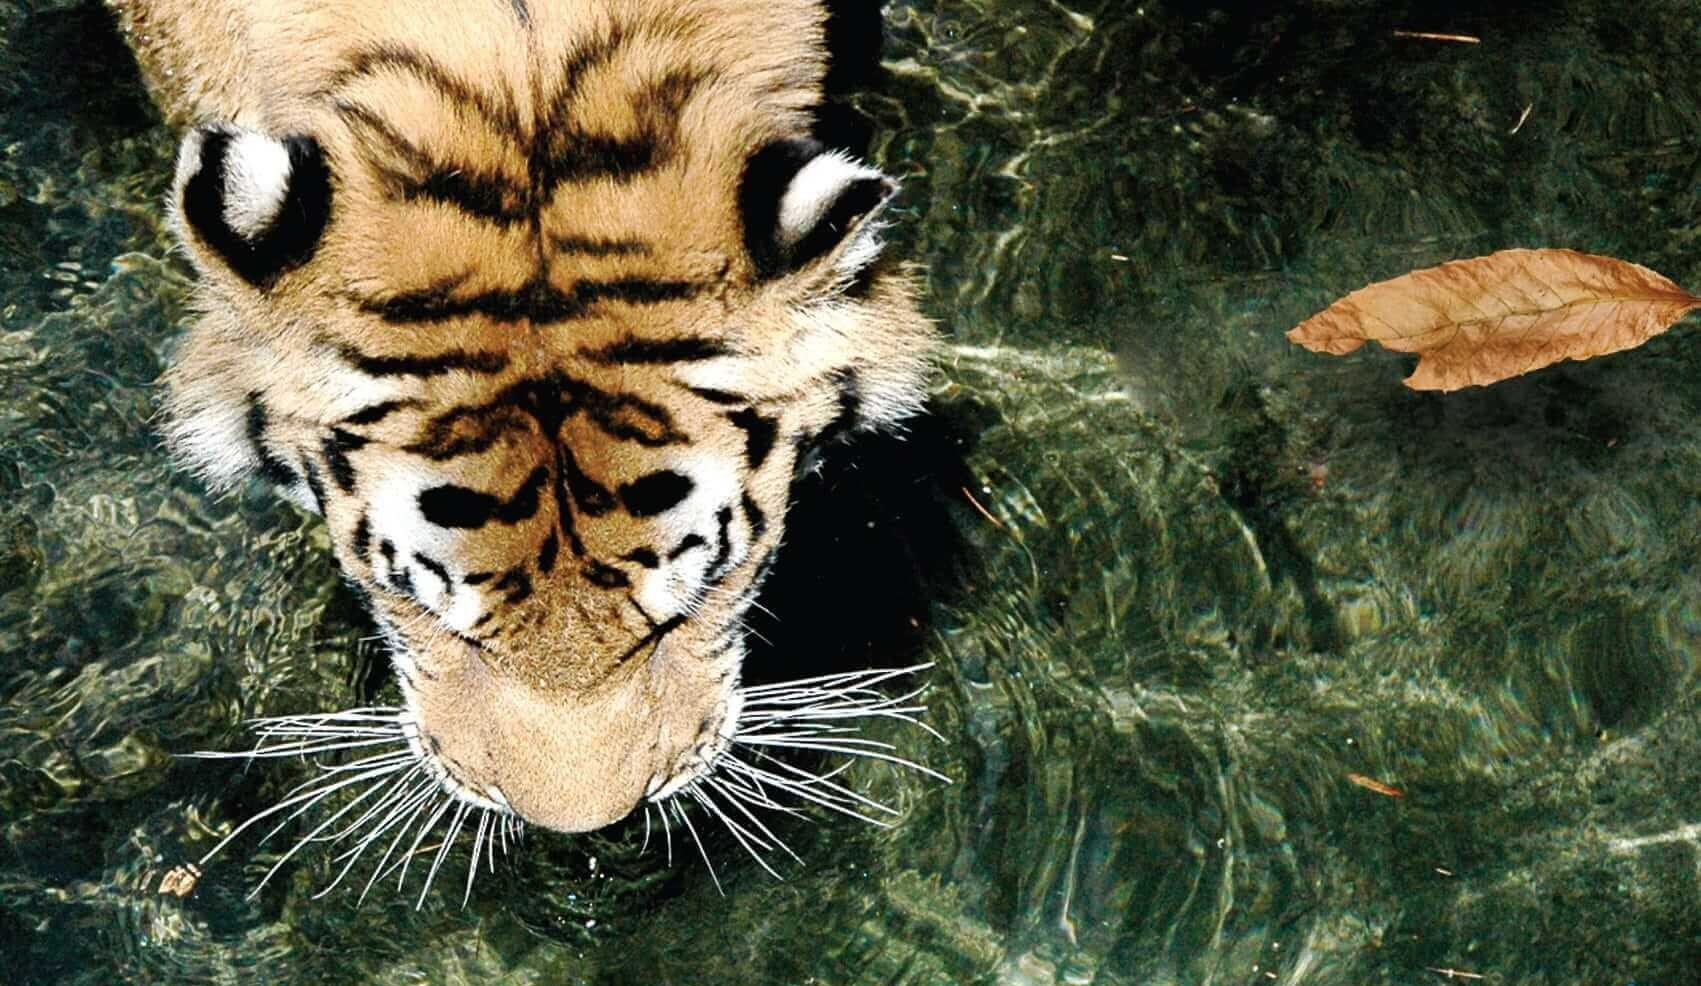 Tigers Drinking Water